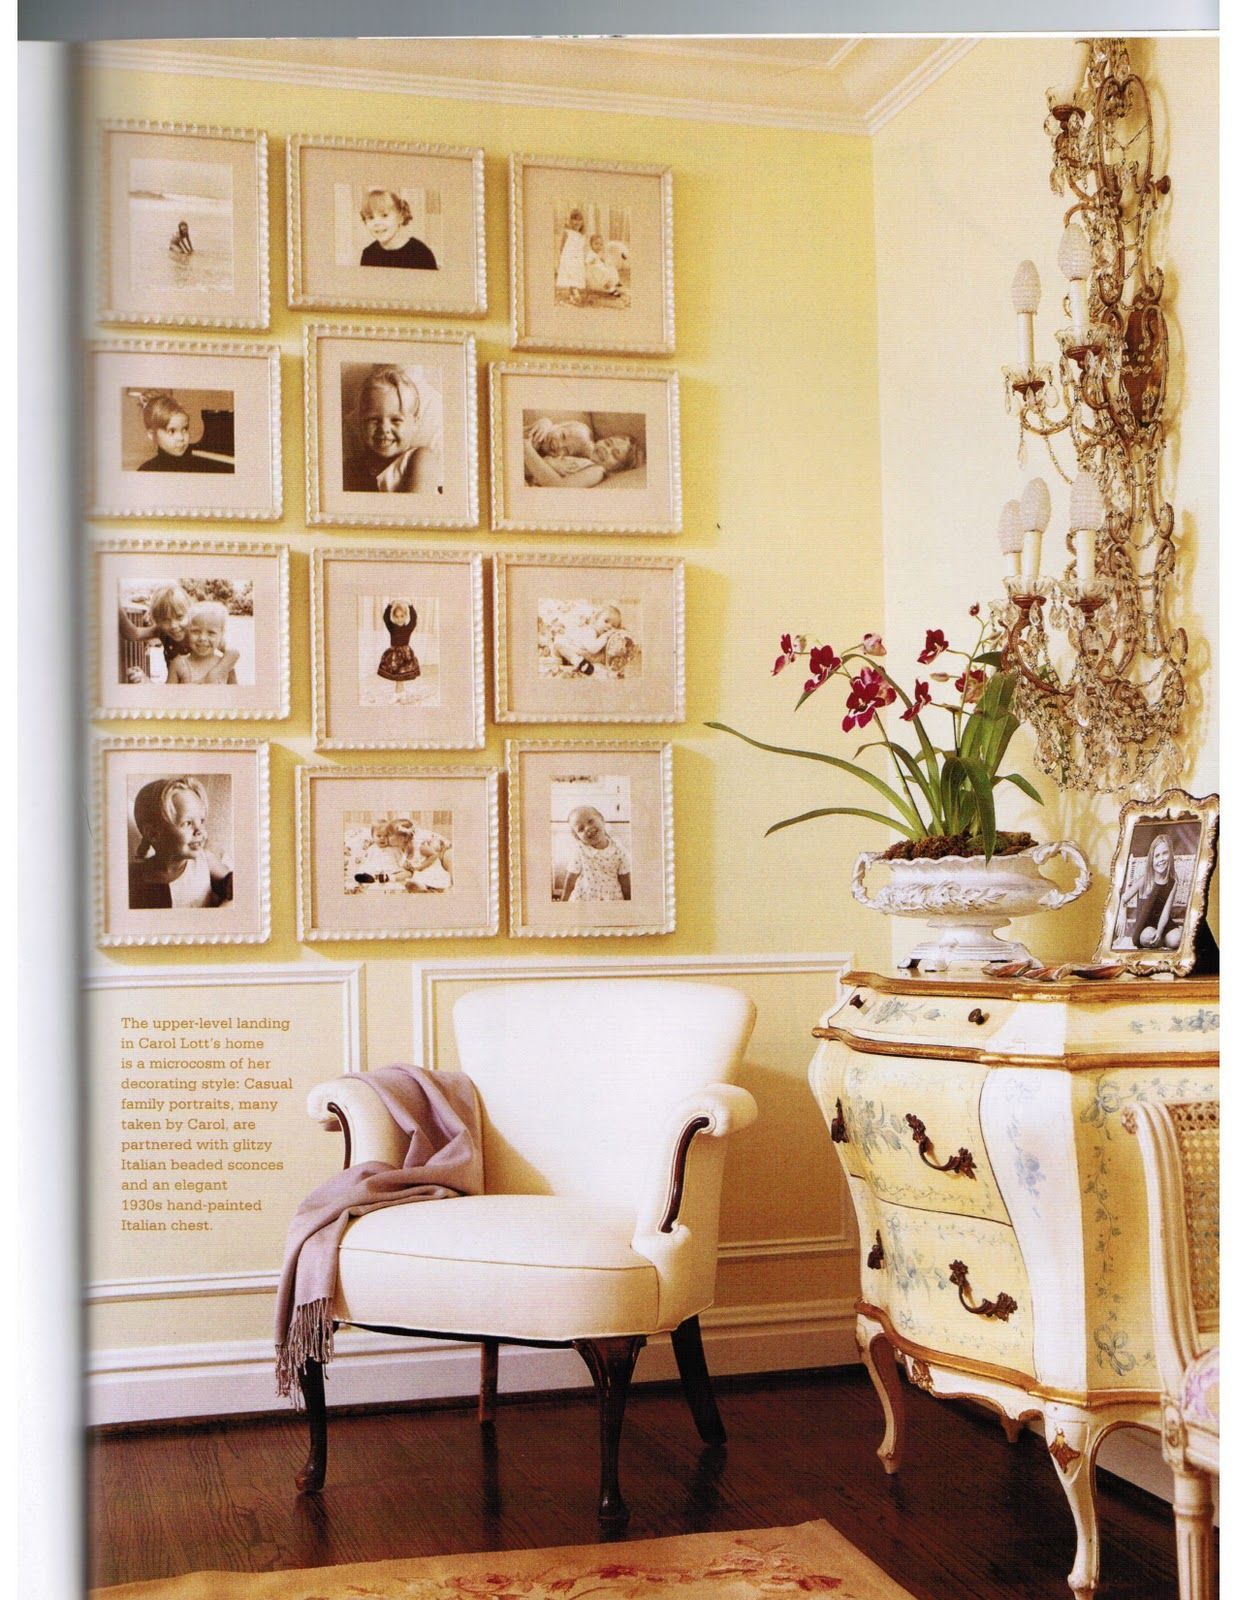 This home from <b>Country</b> <b>French</b> Magazine caught my ...